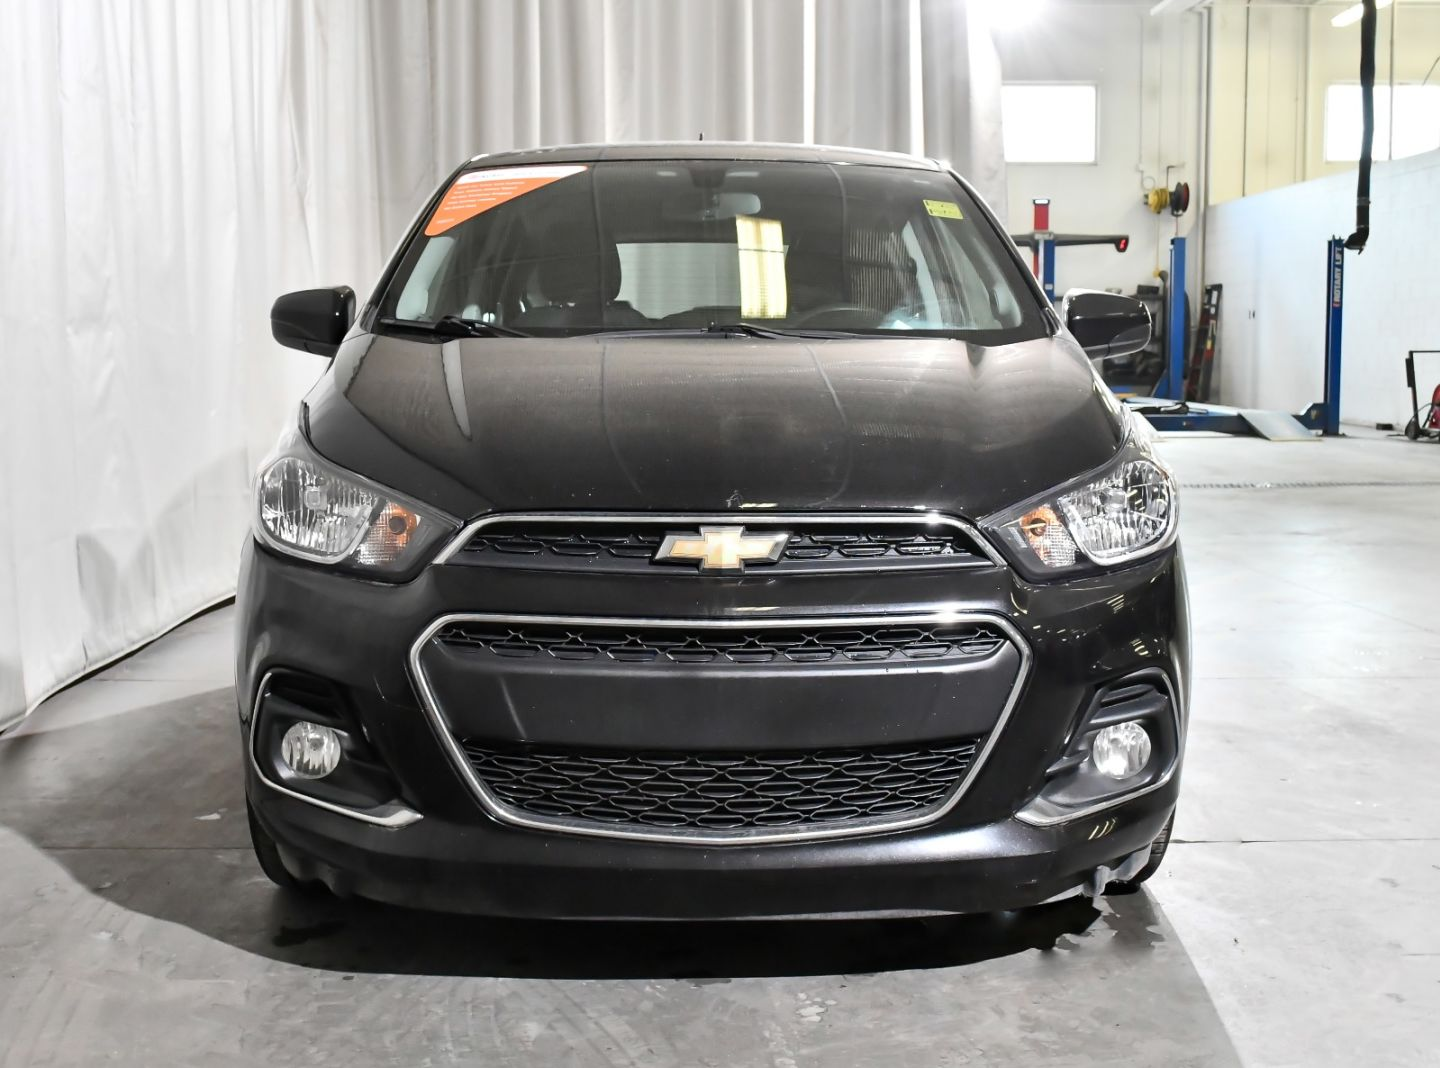 2017 Chevrolet Spark LT for sale in Red Deer, Alberta